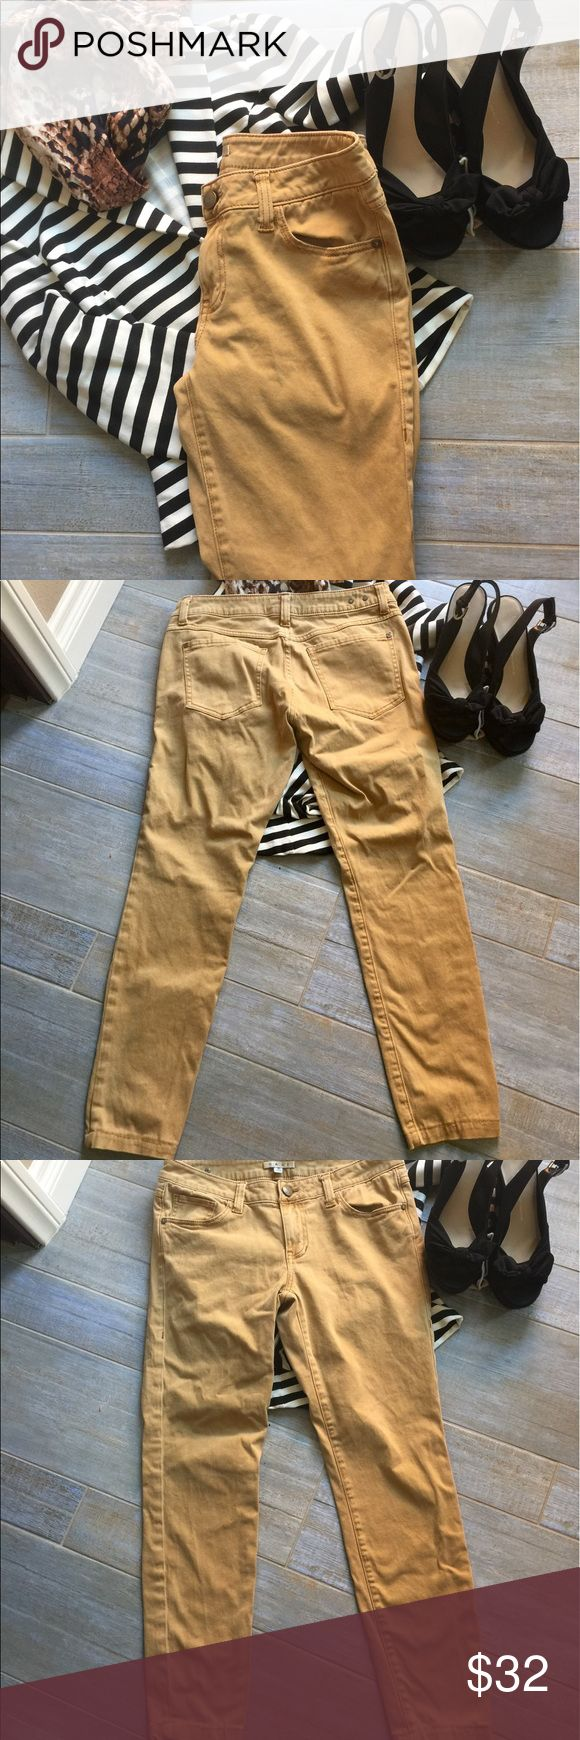 CAbi gold jeans Trending now, gold jeans CAbi #502. I love how they go with everything! True to size 6. CAbi Jeans